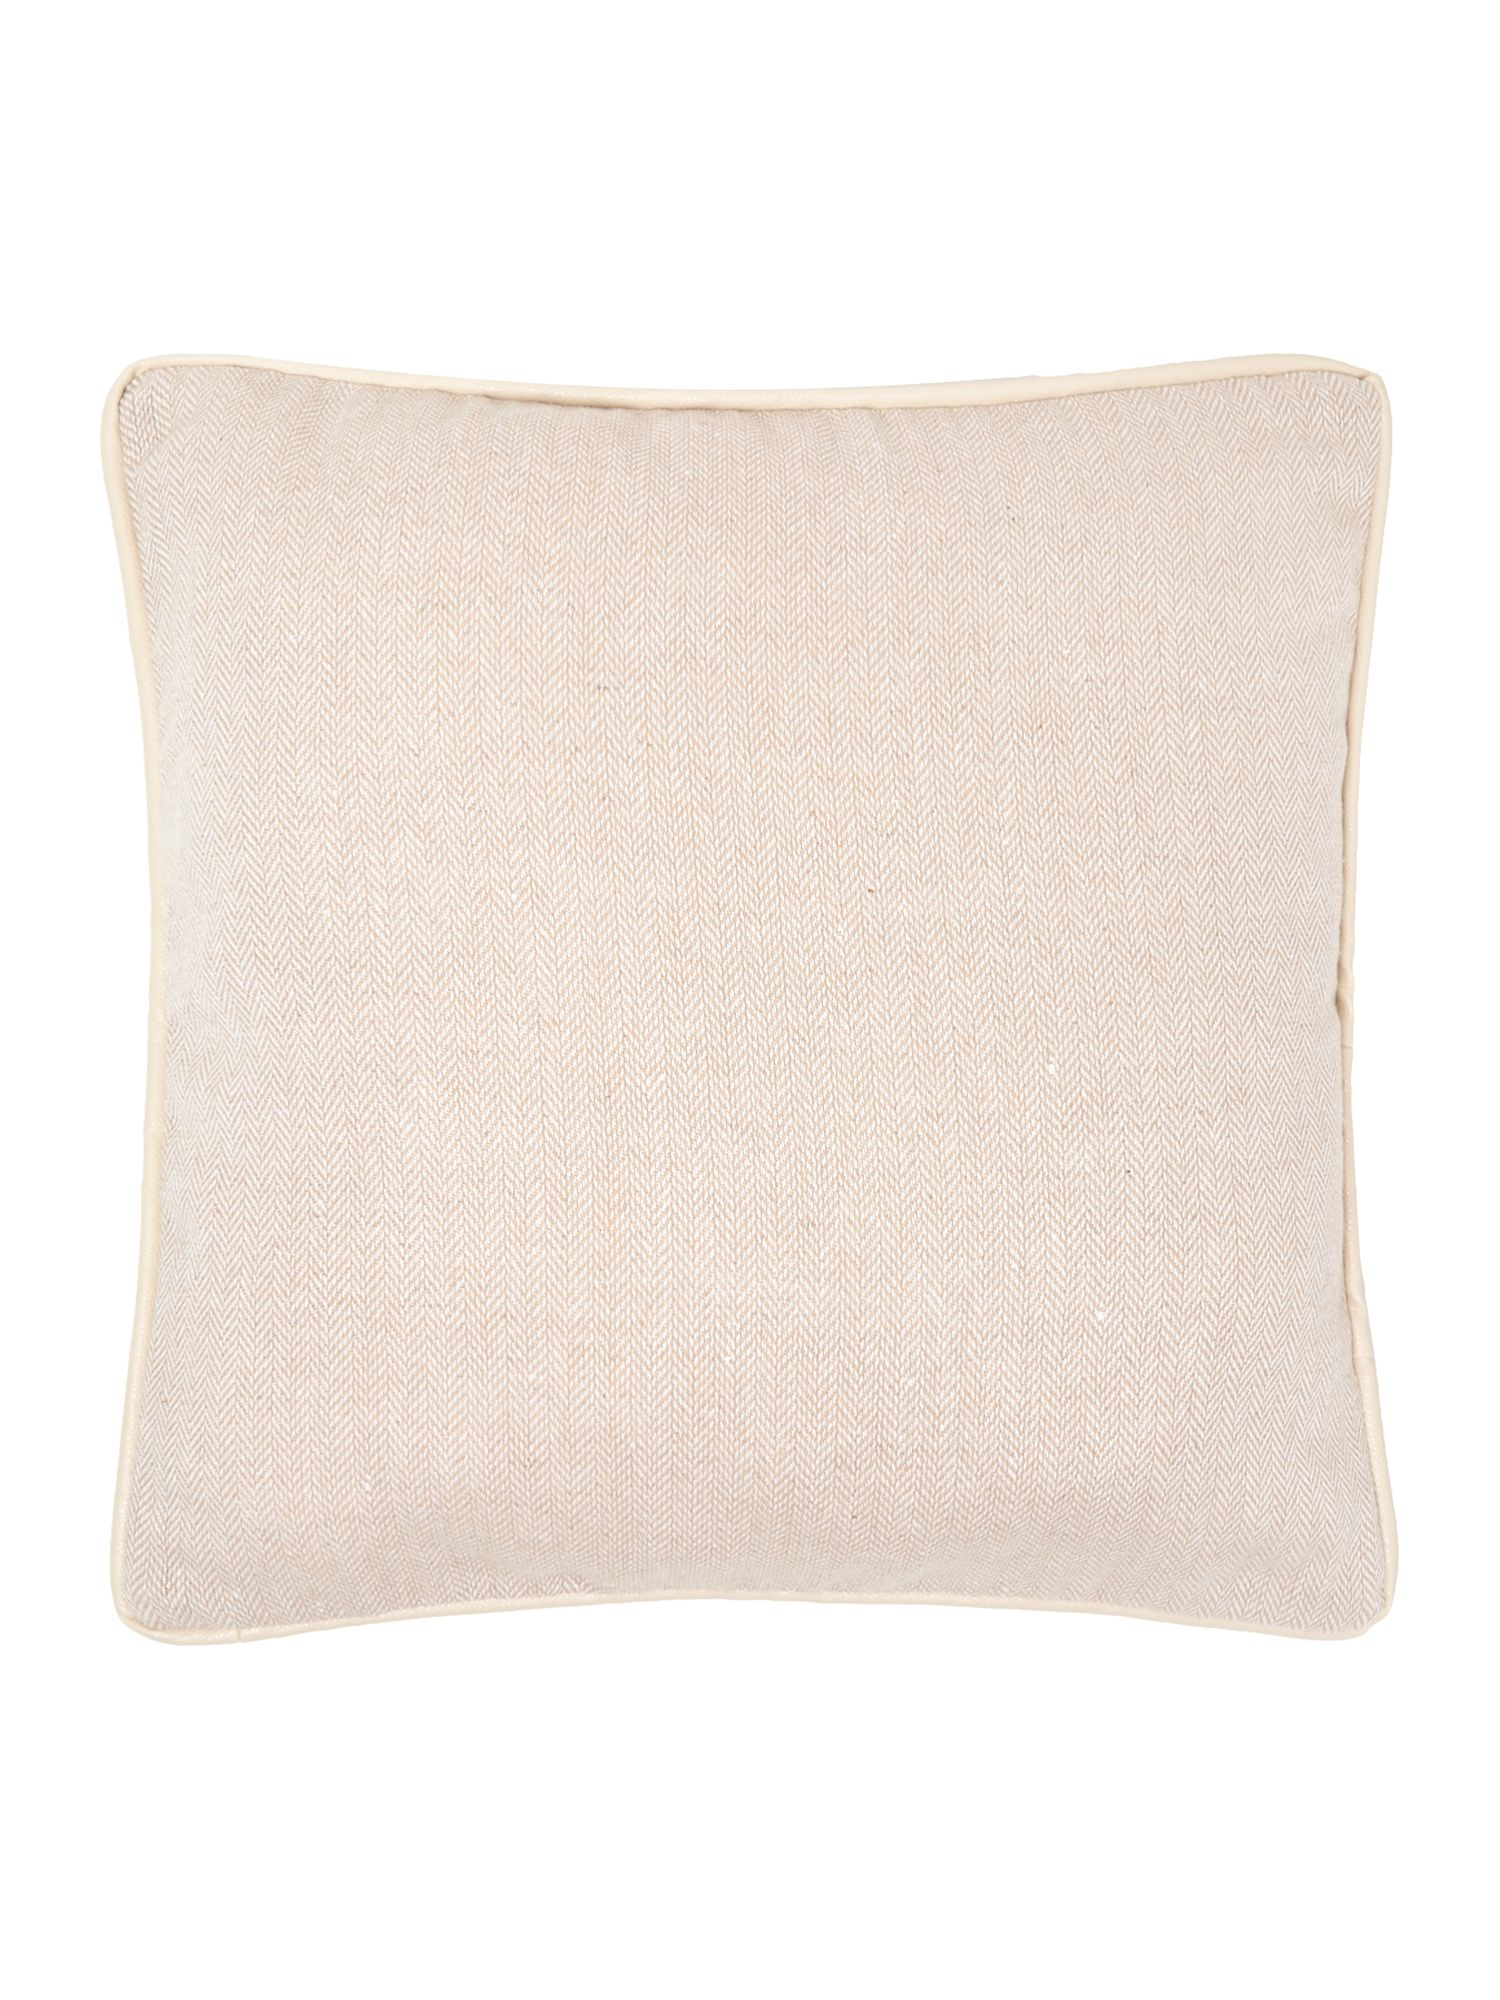 Herringbone cushion, cream